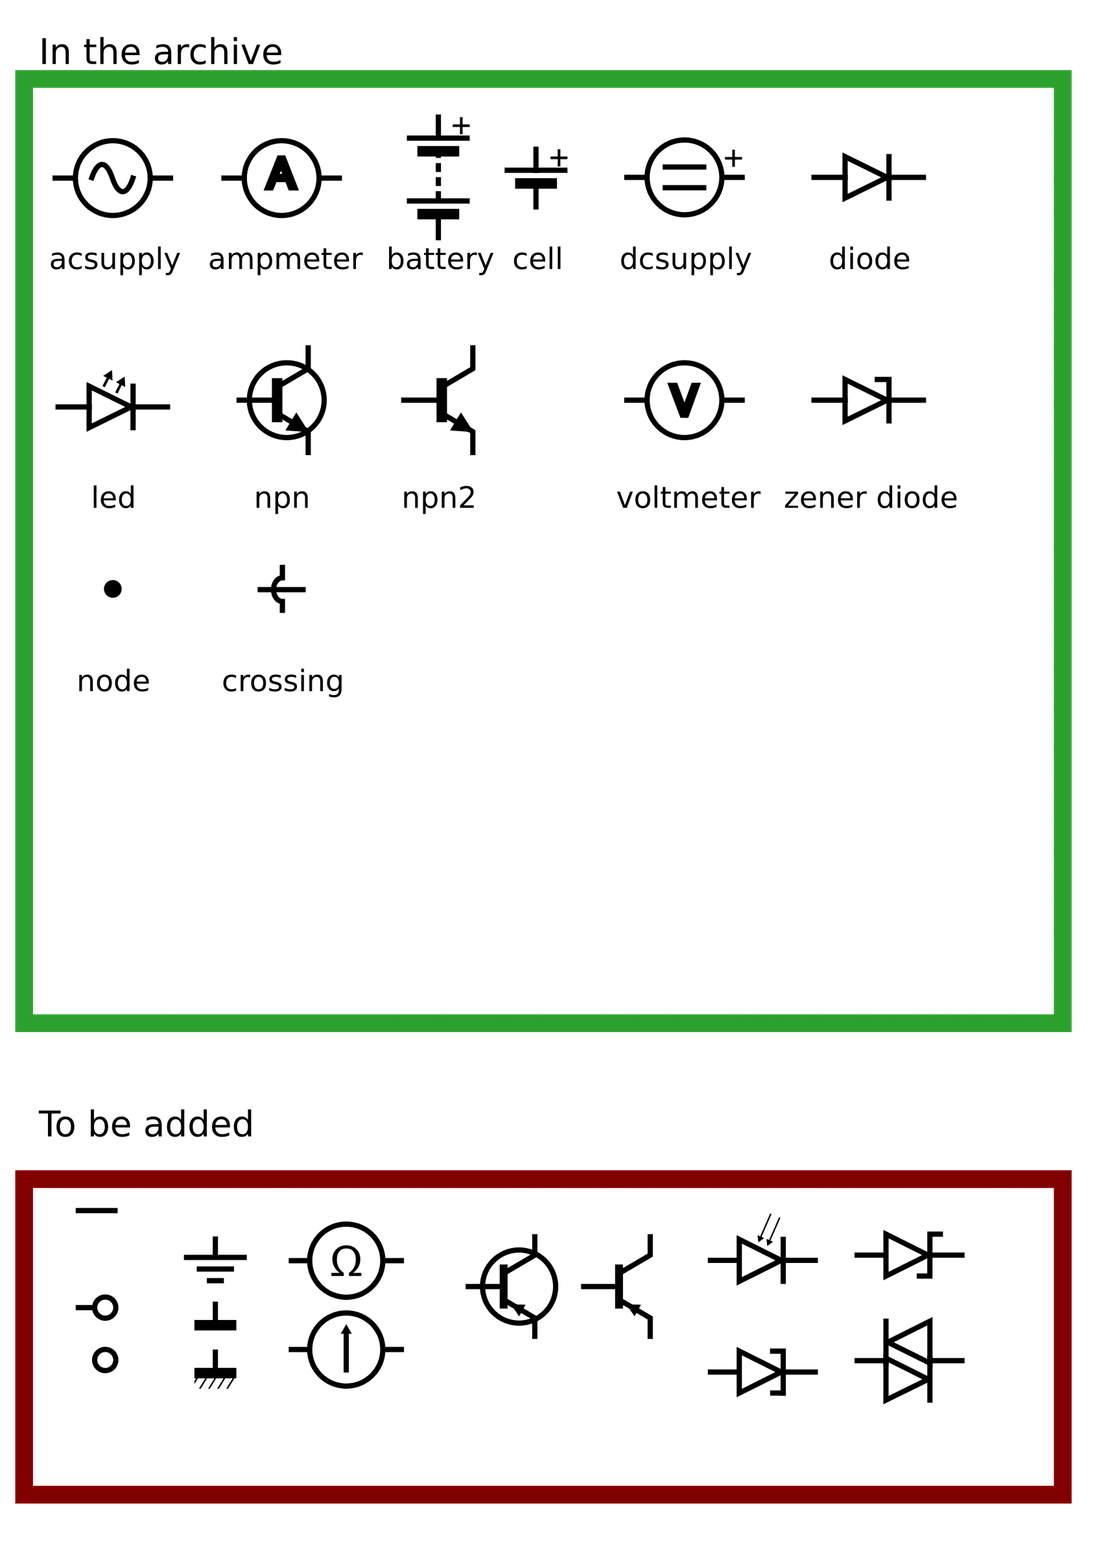 Switch Symbols Diagram Wiring Get Free Image About Wiring Diagram